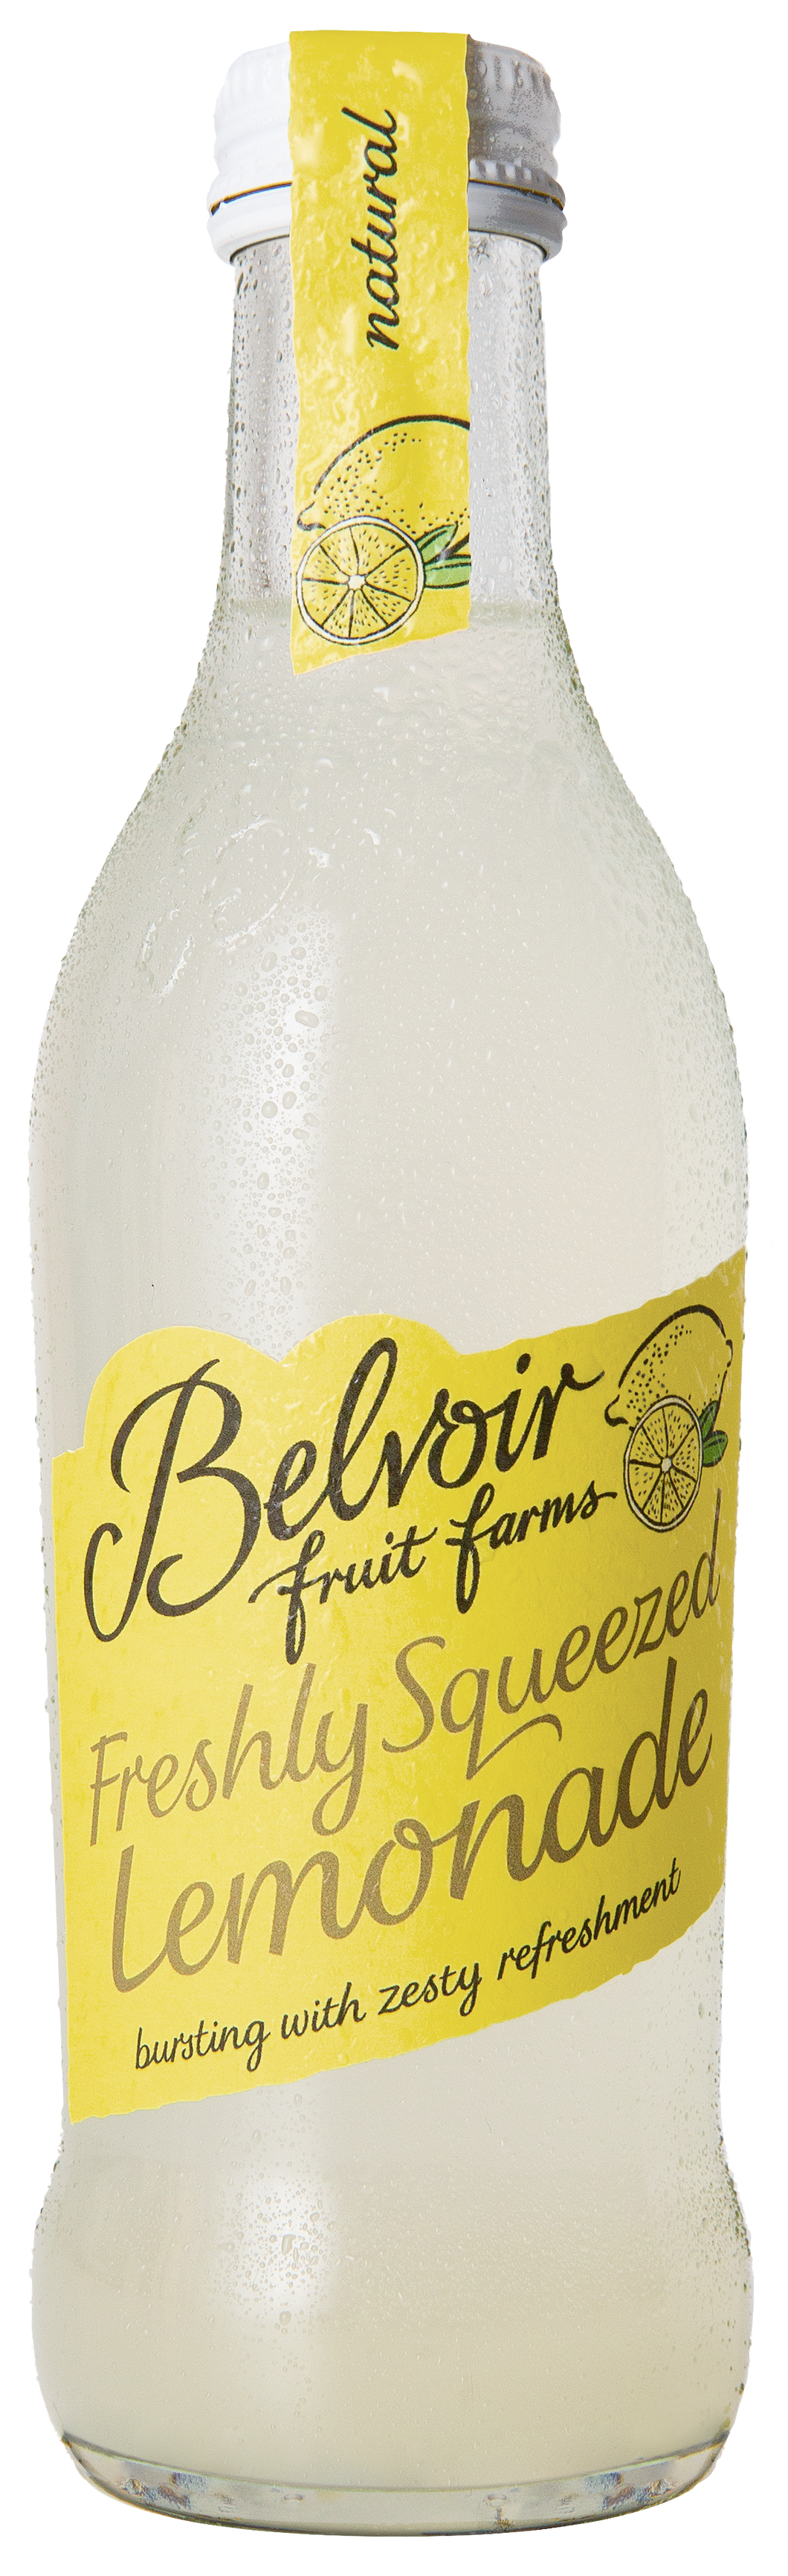 Belvoir Freshly Squeezed Lemonade 12 x 25cl